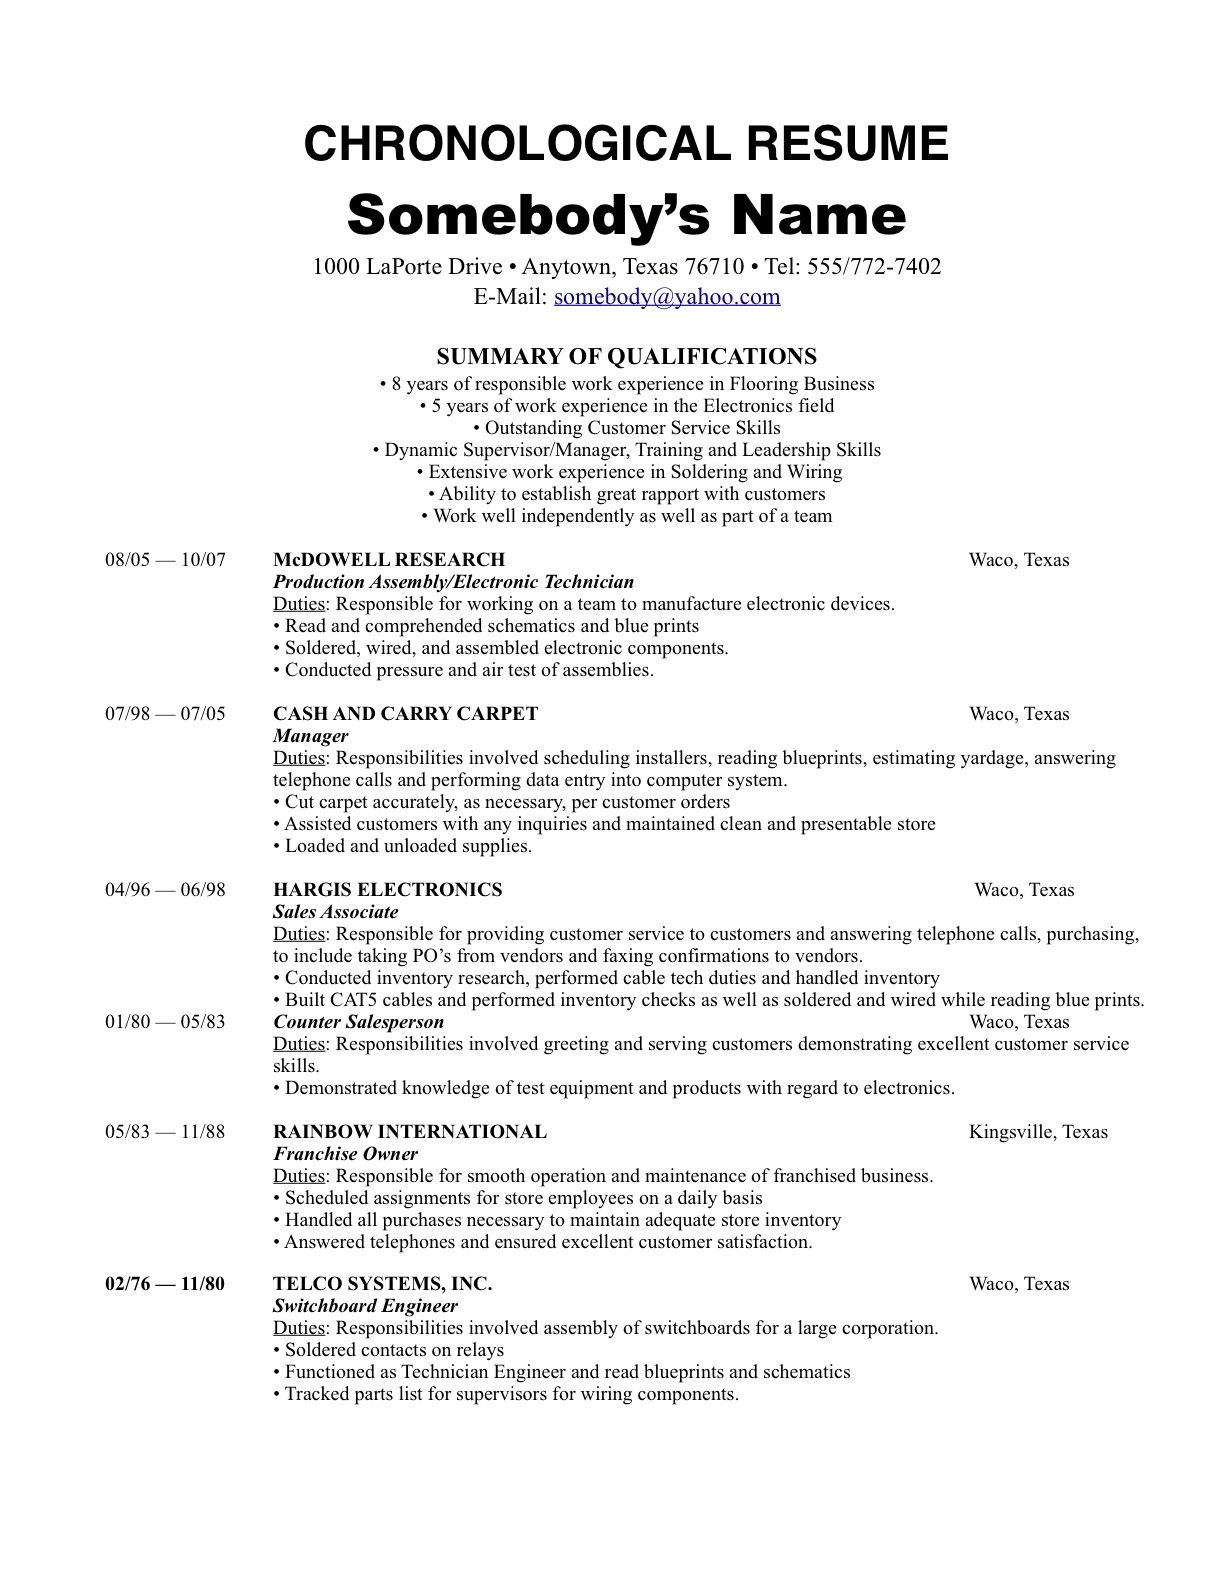 Resume Blank Format Chronological Order Resume Example Dc0364f86 The Most Reverse